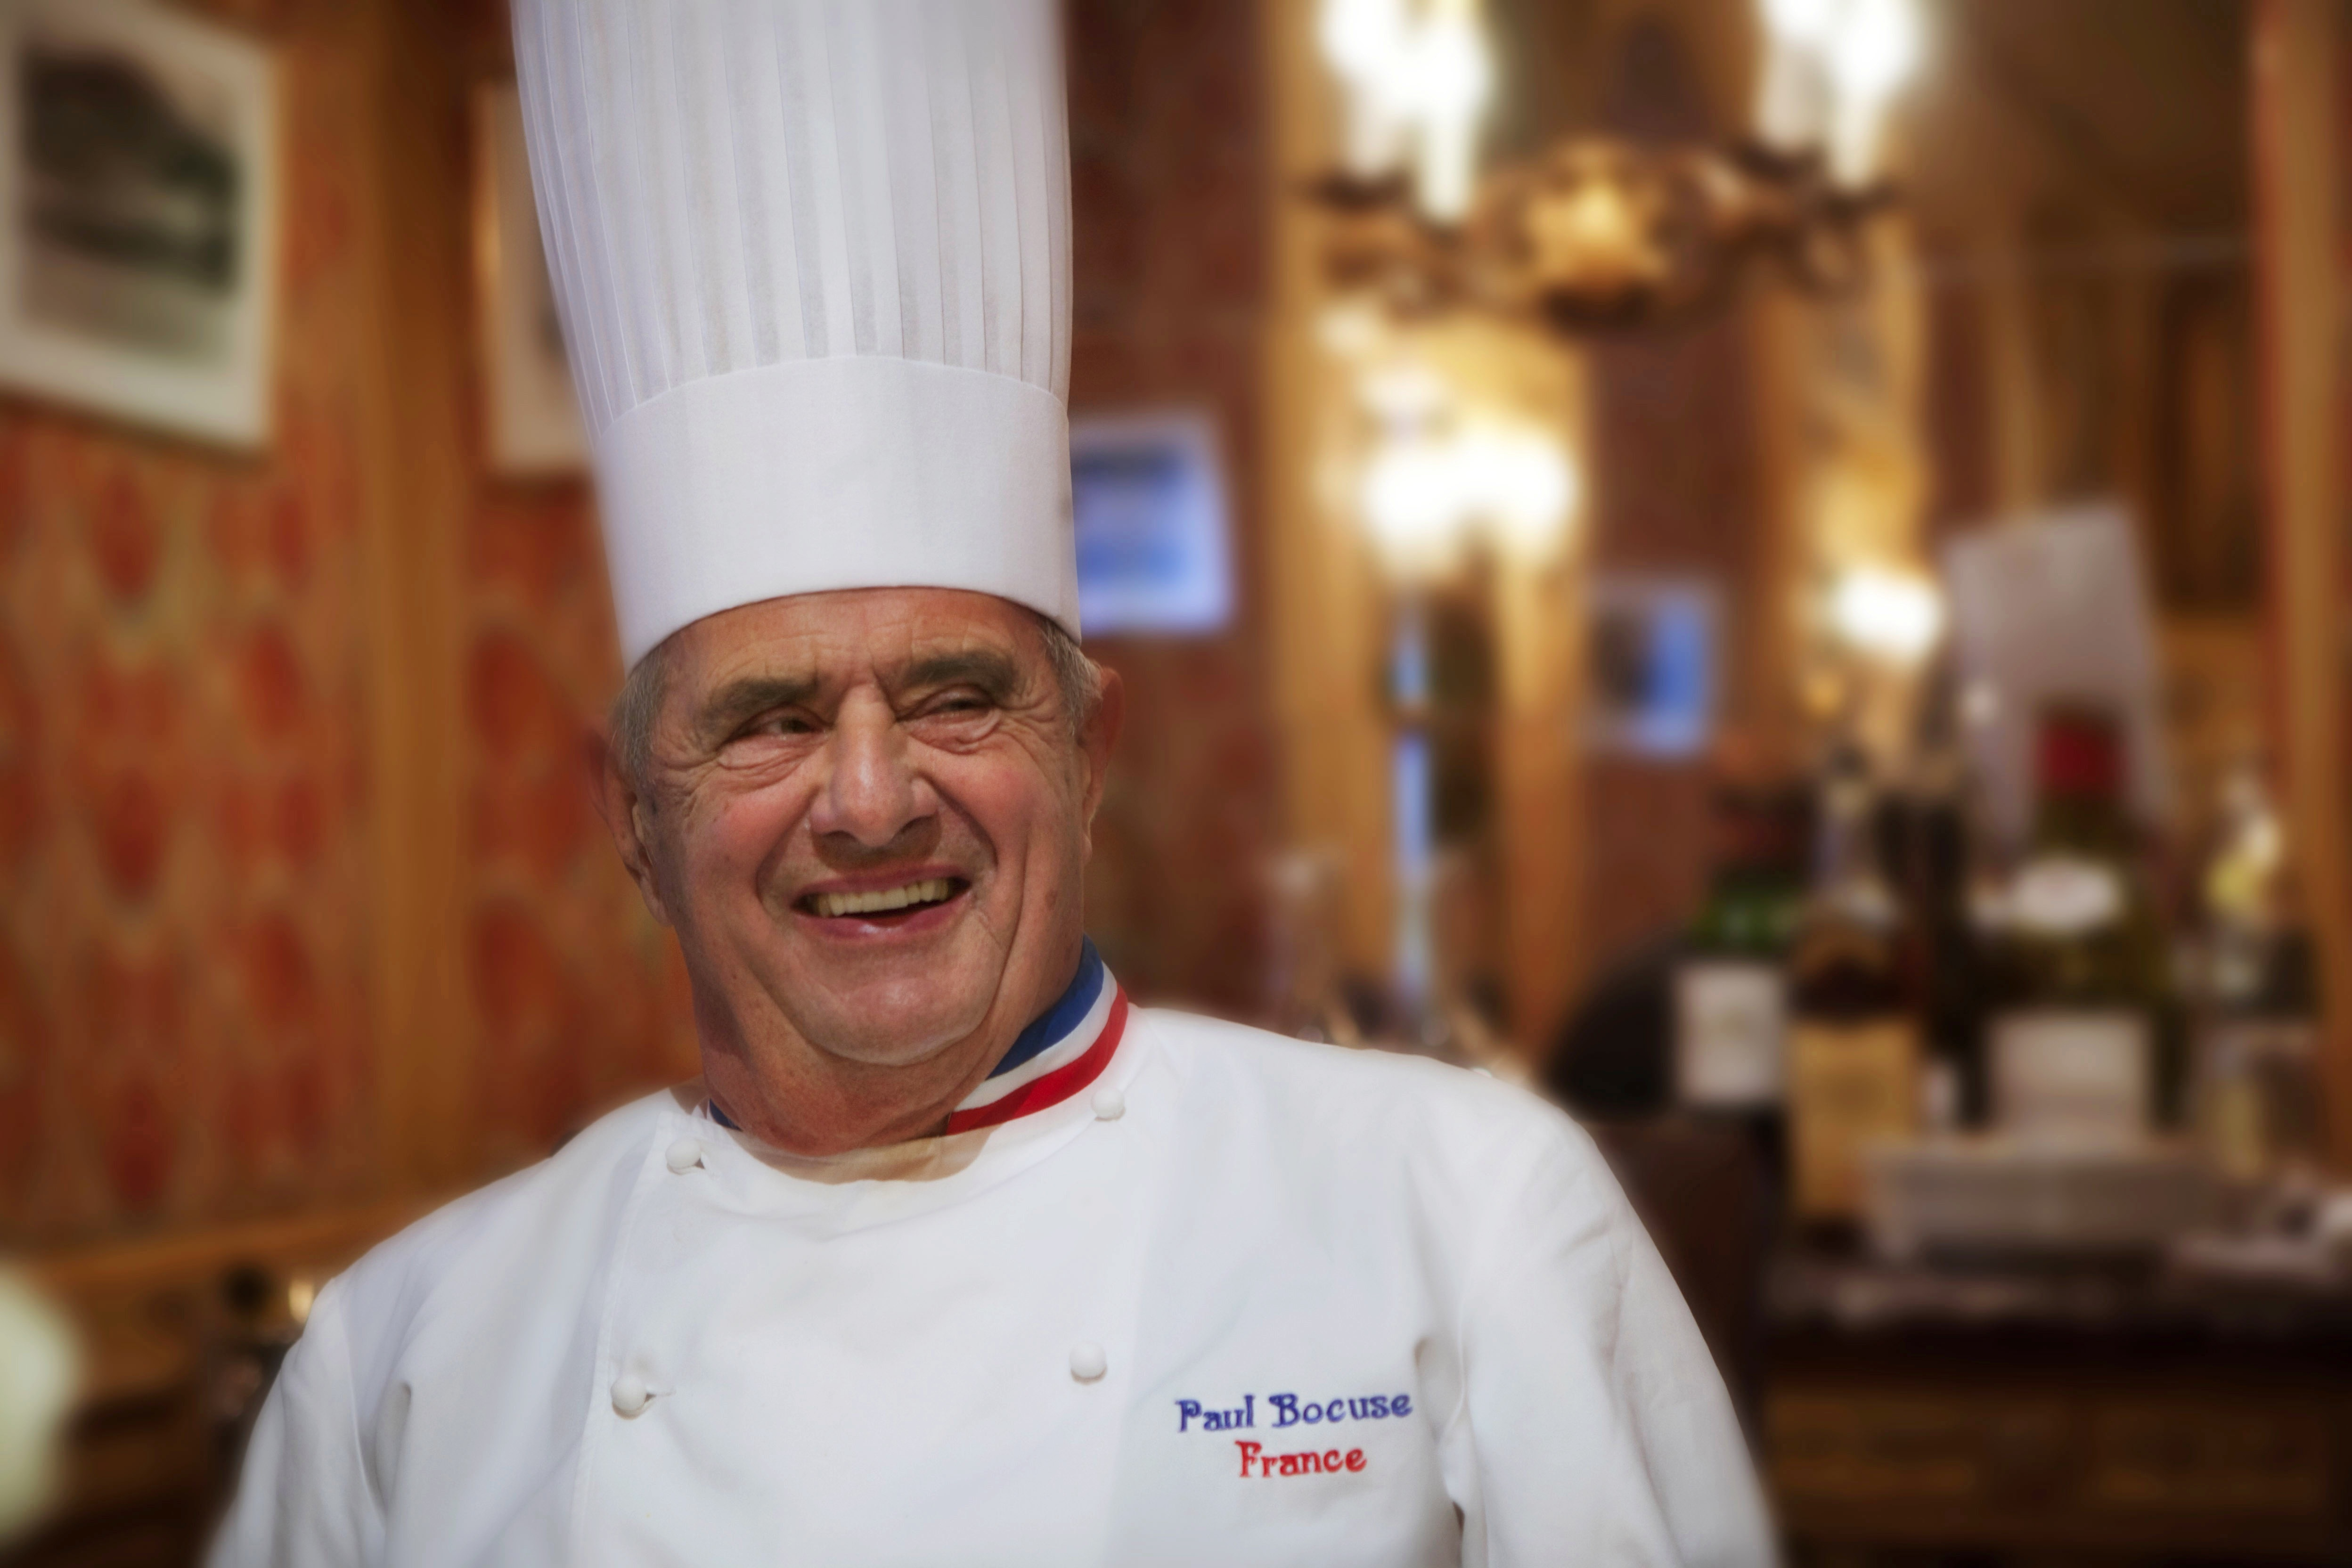 French Chef Paul Bocuse In His Restaurant Paul Bocuse In Collonges-Au-Mont-d'Or